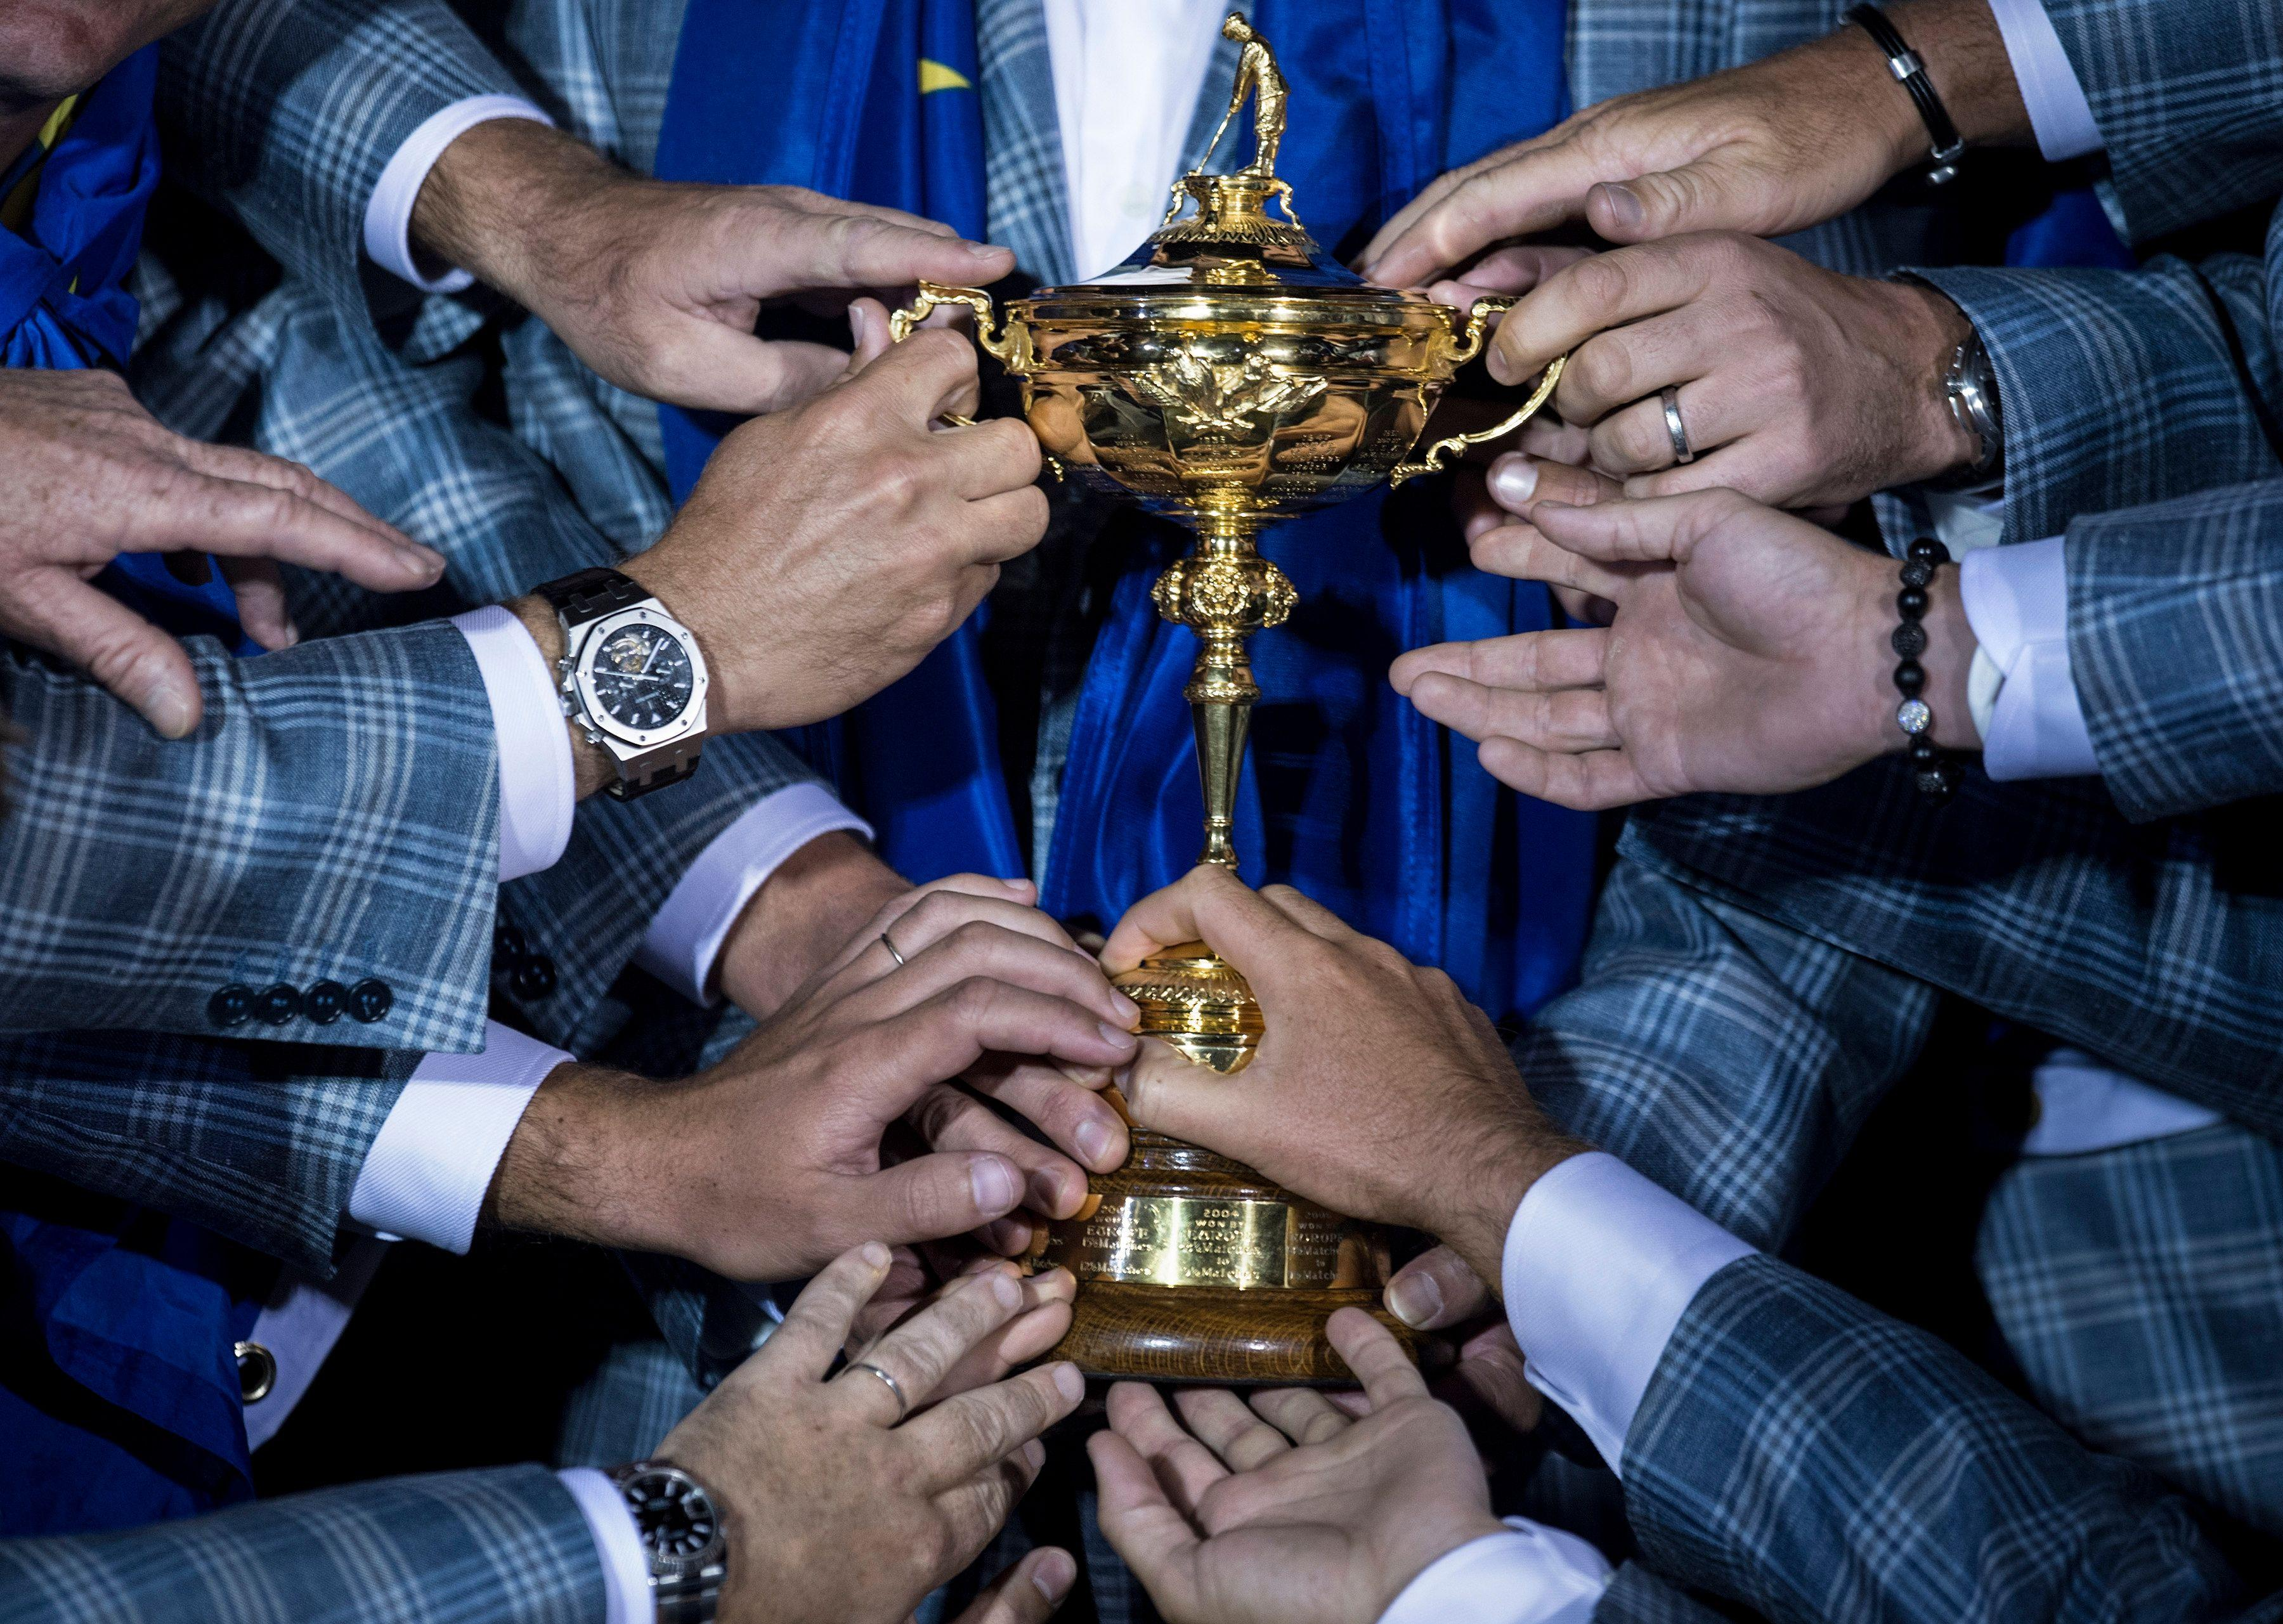 Teams play in fourballs and foursomes during the Ryder Cup